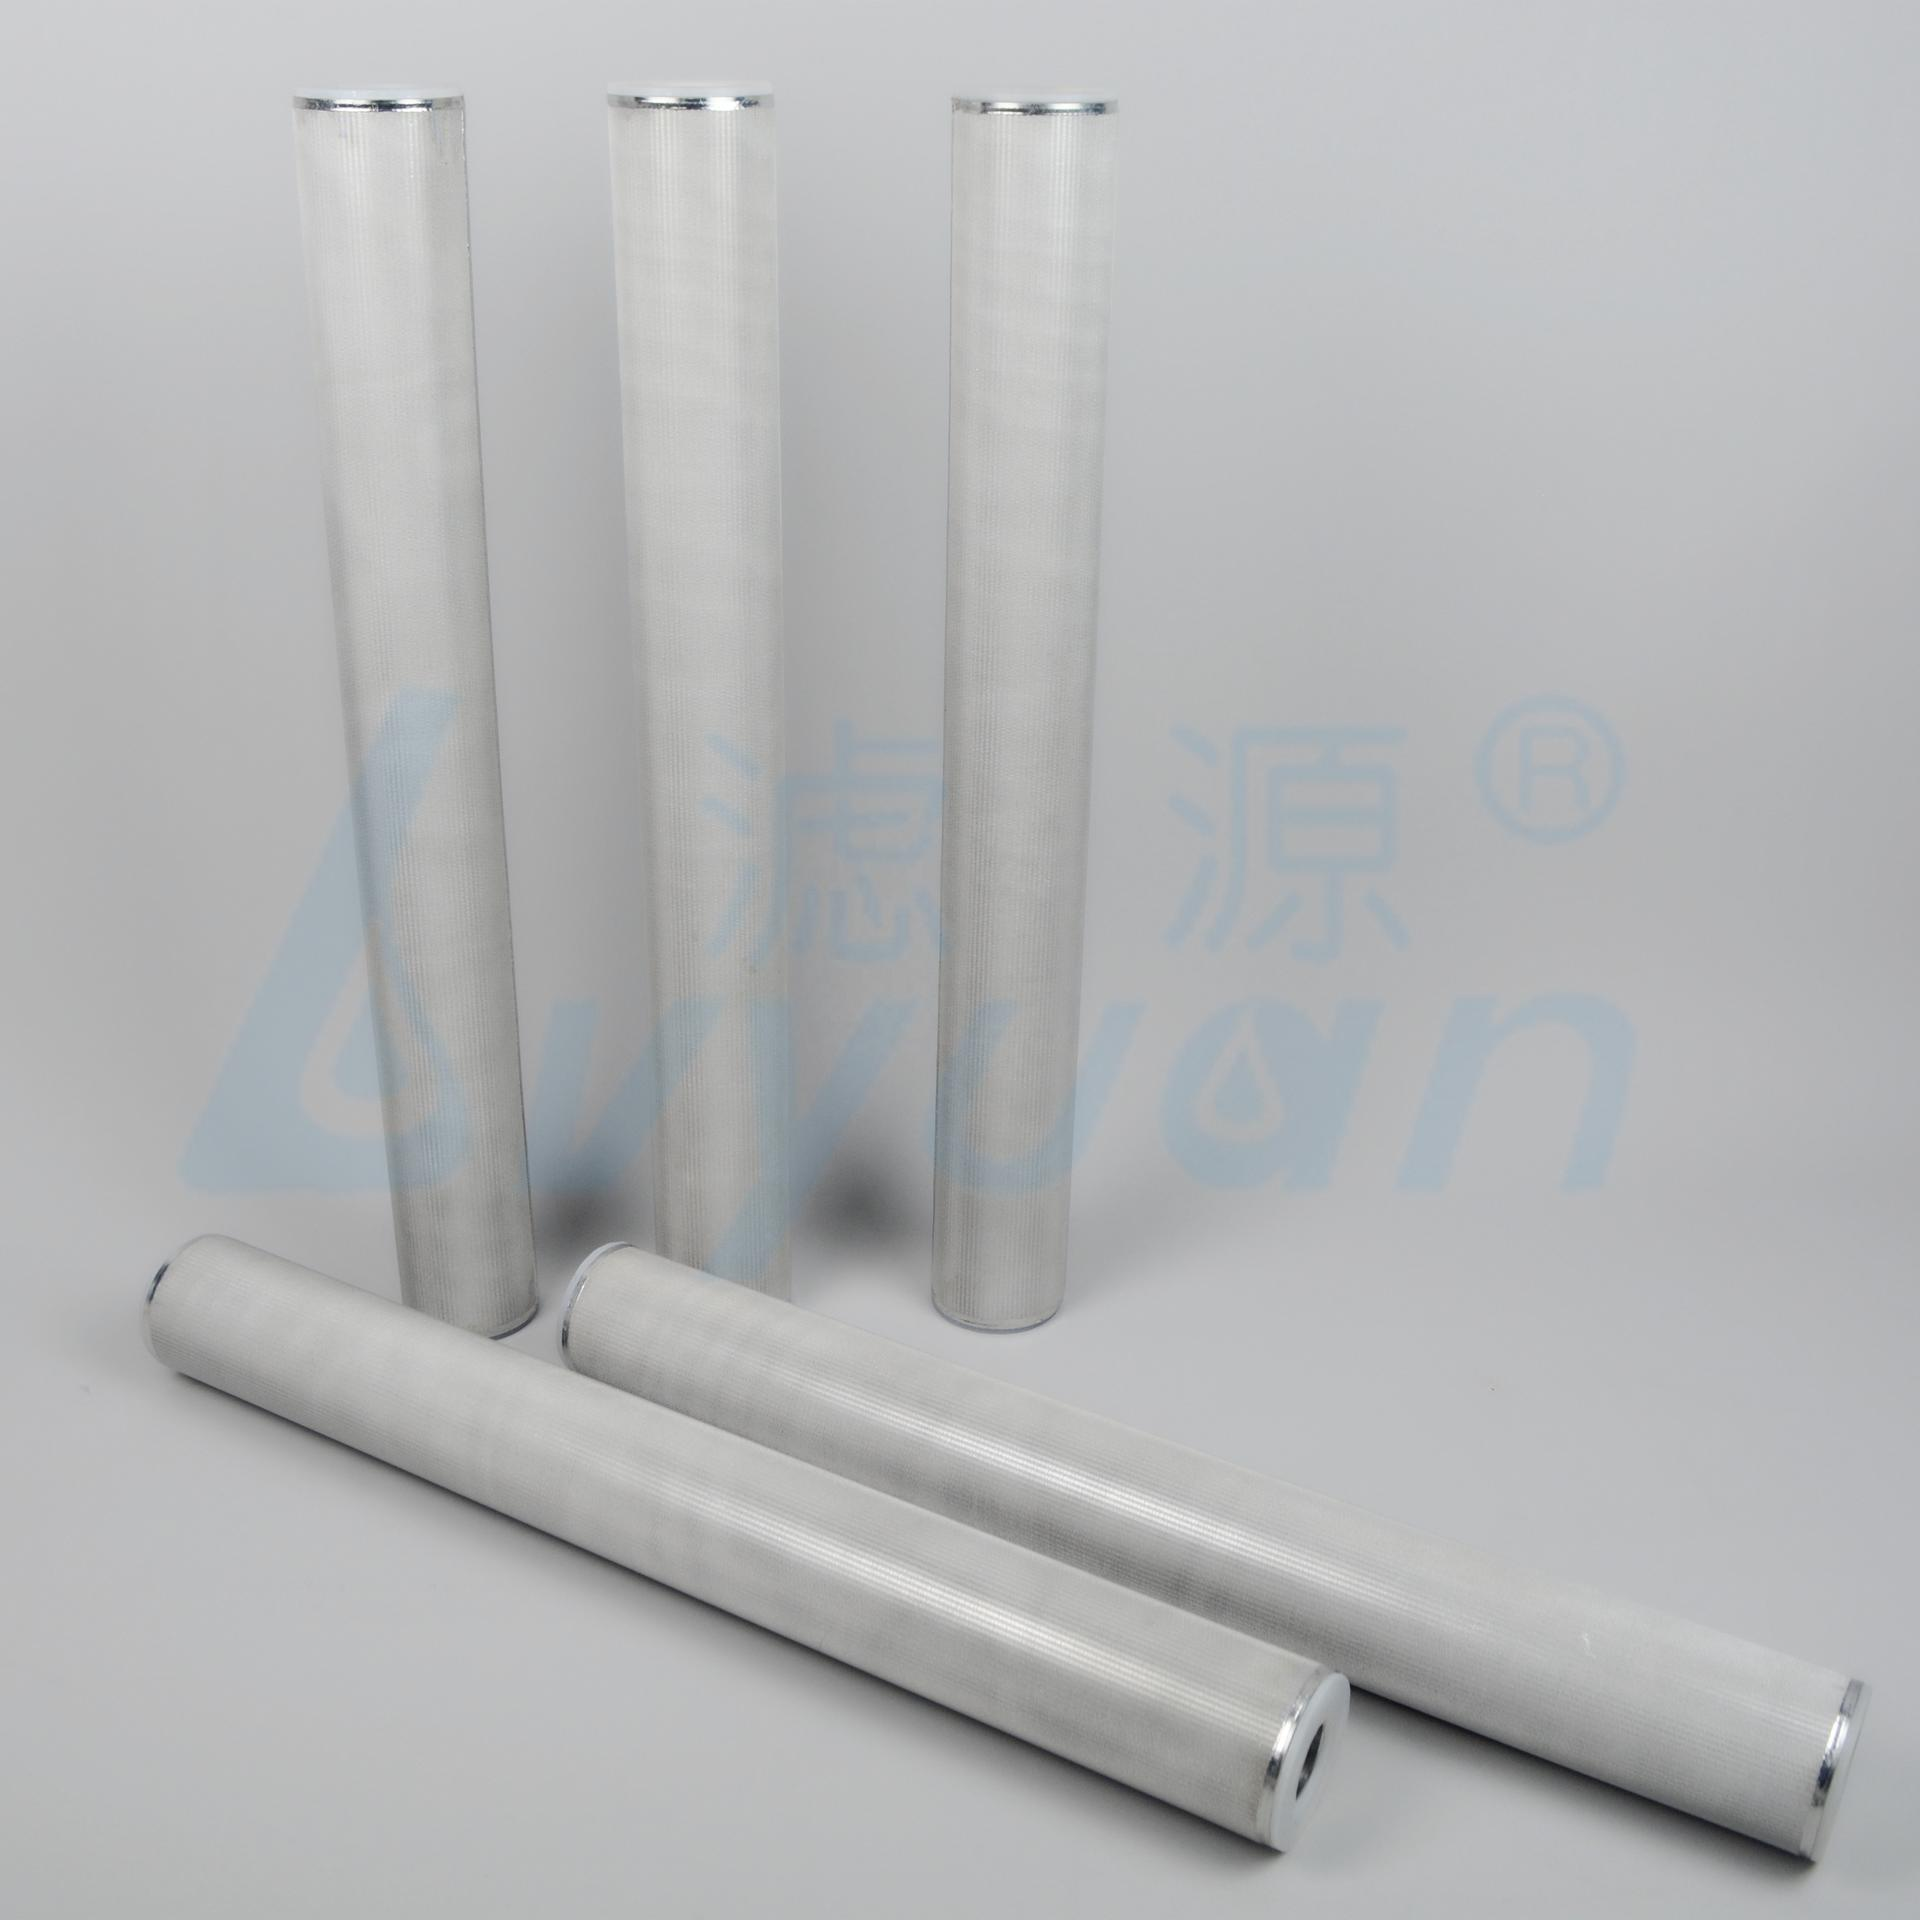 Good Quality stainless steel sintered Filter Cartridge for oil filtration and filter water